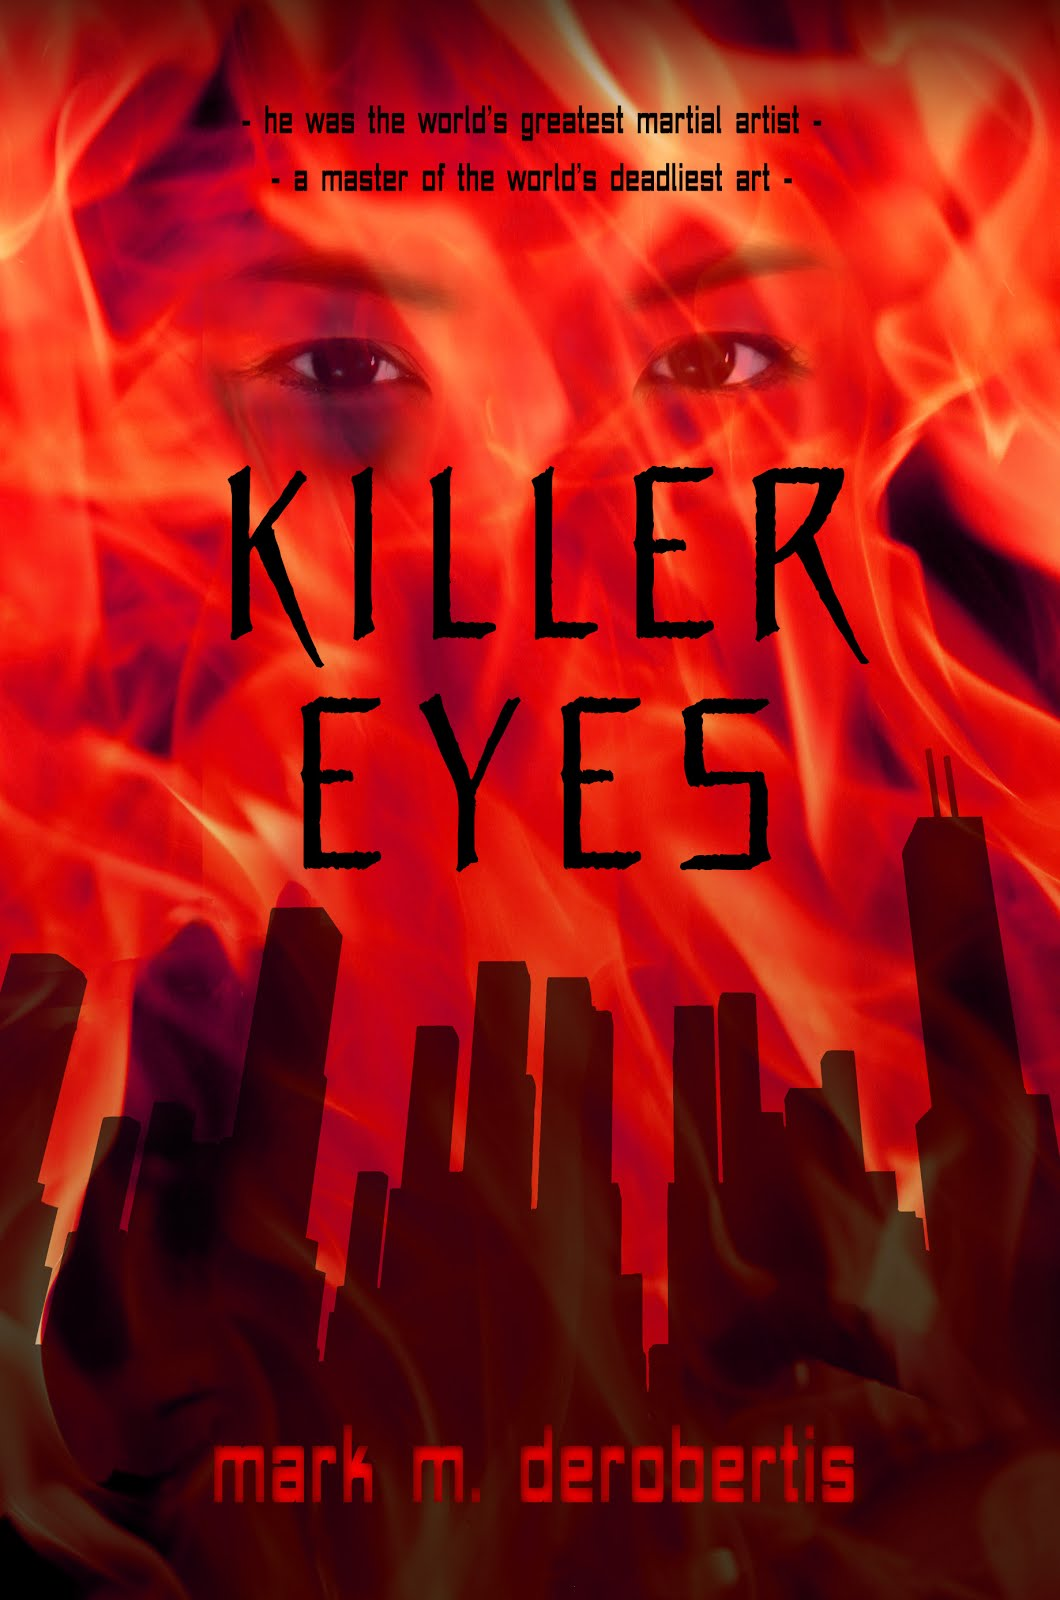 KILLER EYES - Book Two in the Killer Series now available from Melange Books.